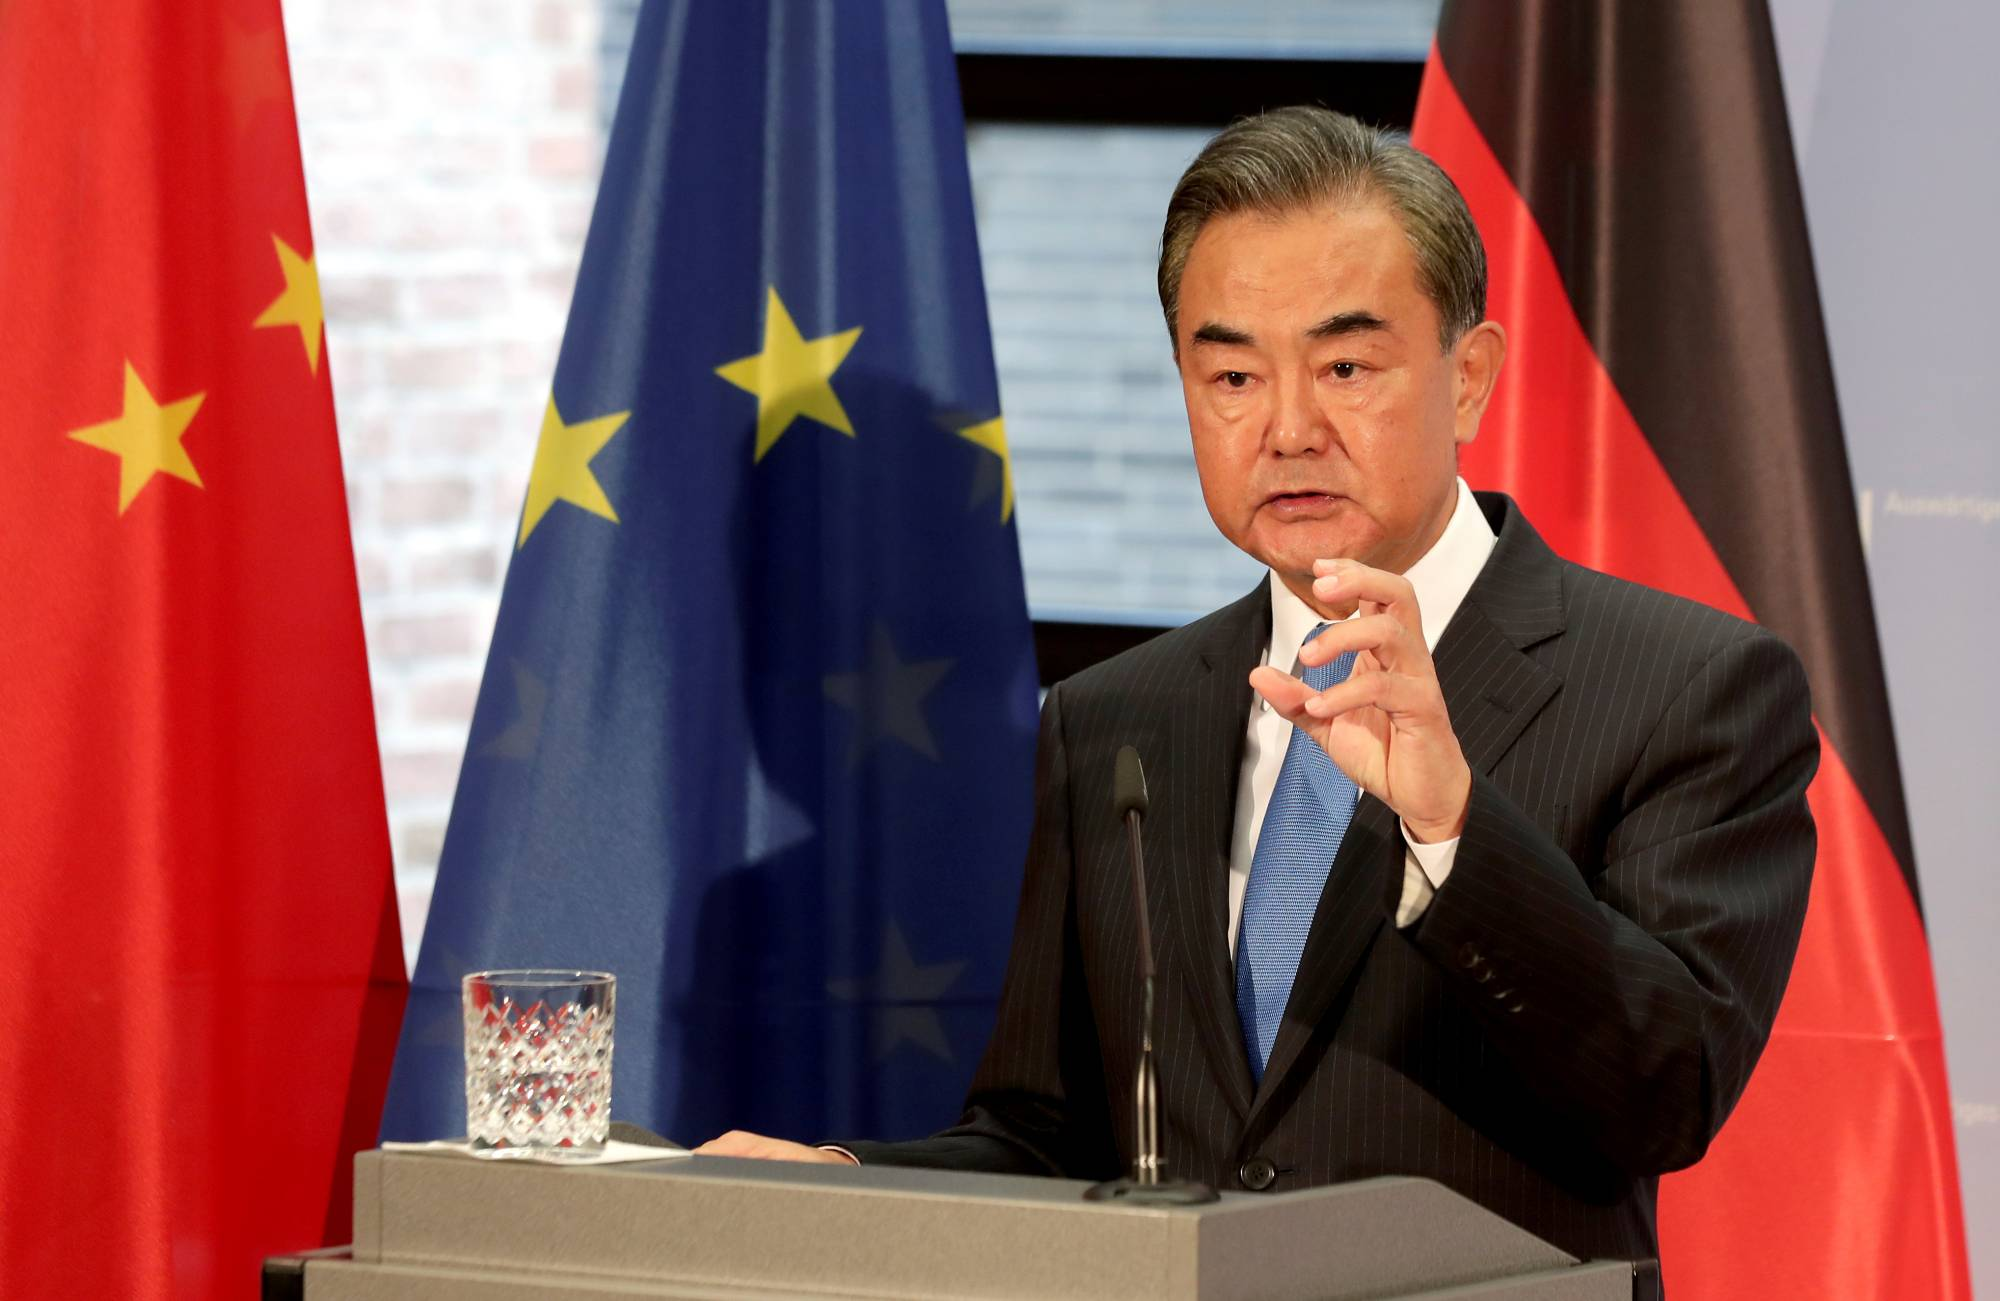 Wang Yi | POOL / VIA REUTERS